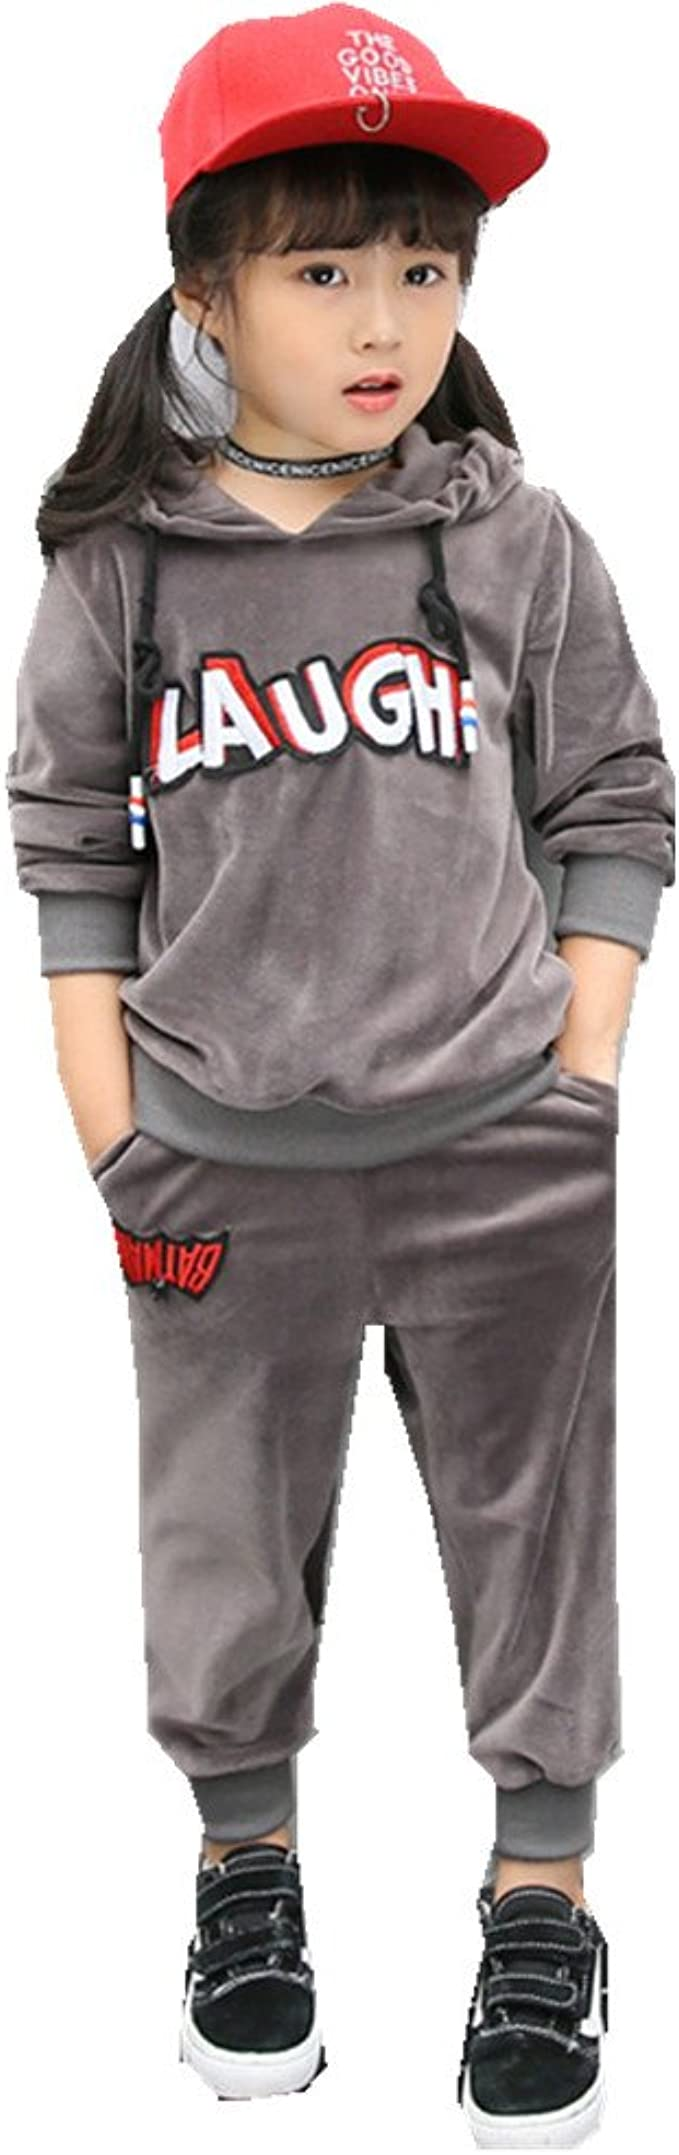 Pants FTSUCQ Kids Fleeced Pullover Sports Tracksuits Outerwear Coat